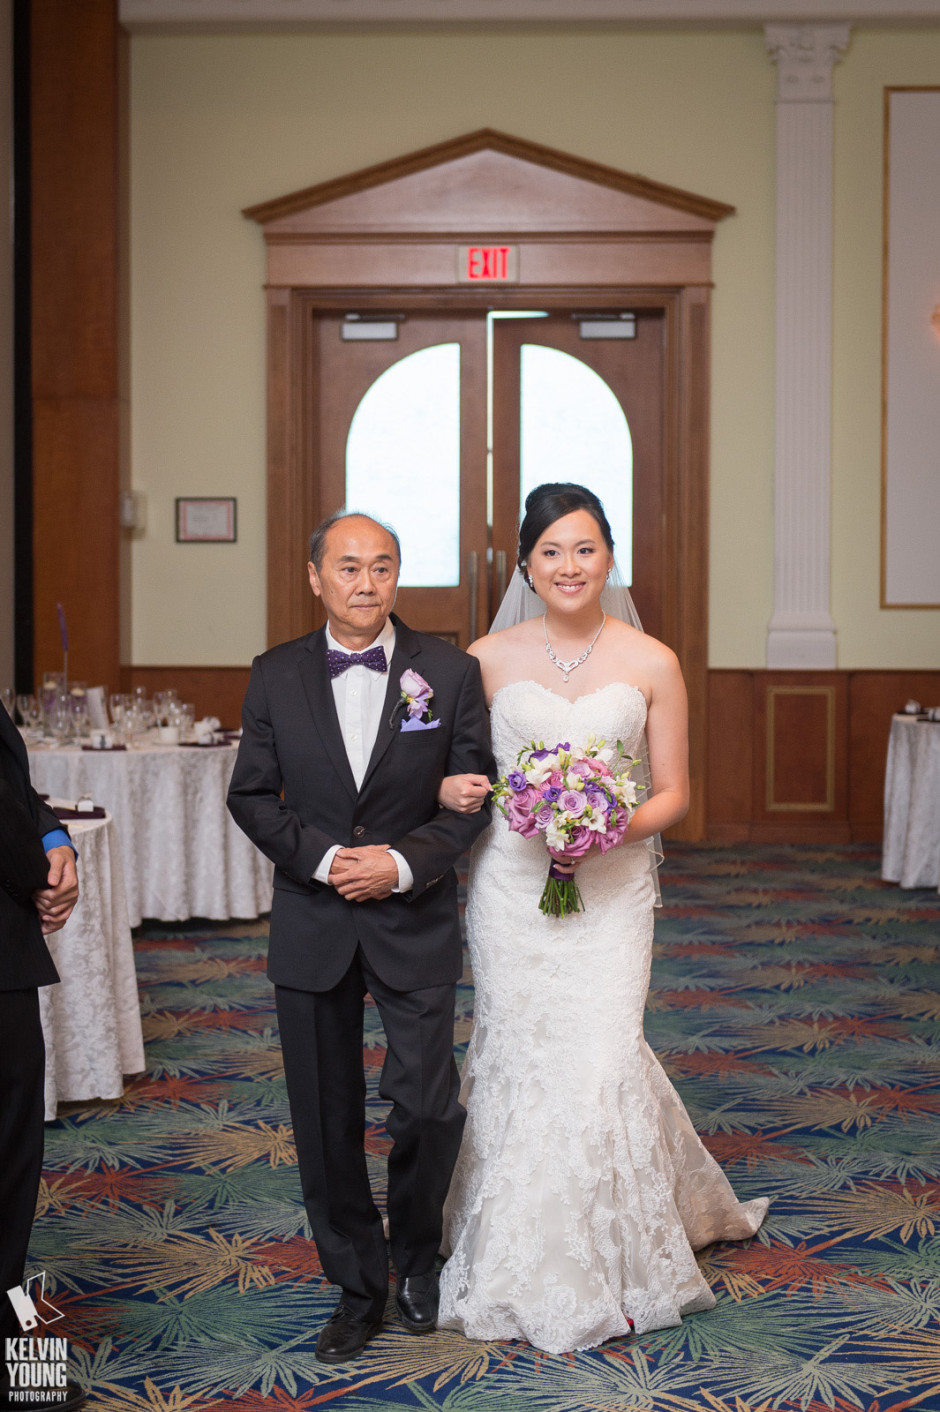 Joyce-Kelvin-Toronto-Markham-Wedding-Photography-026